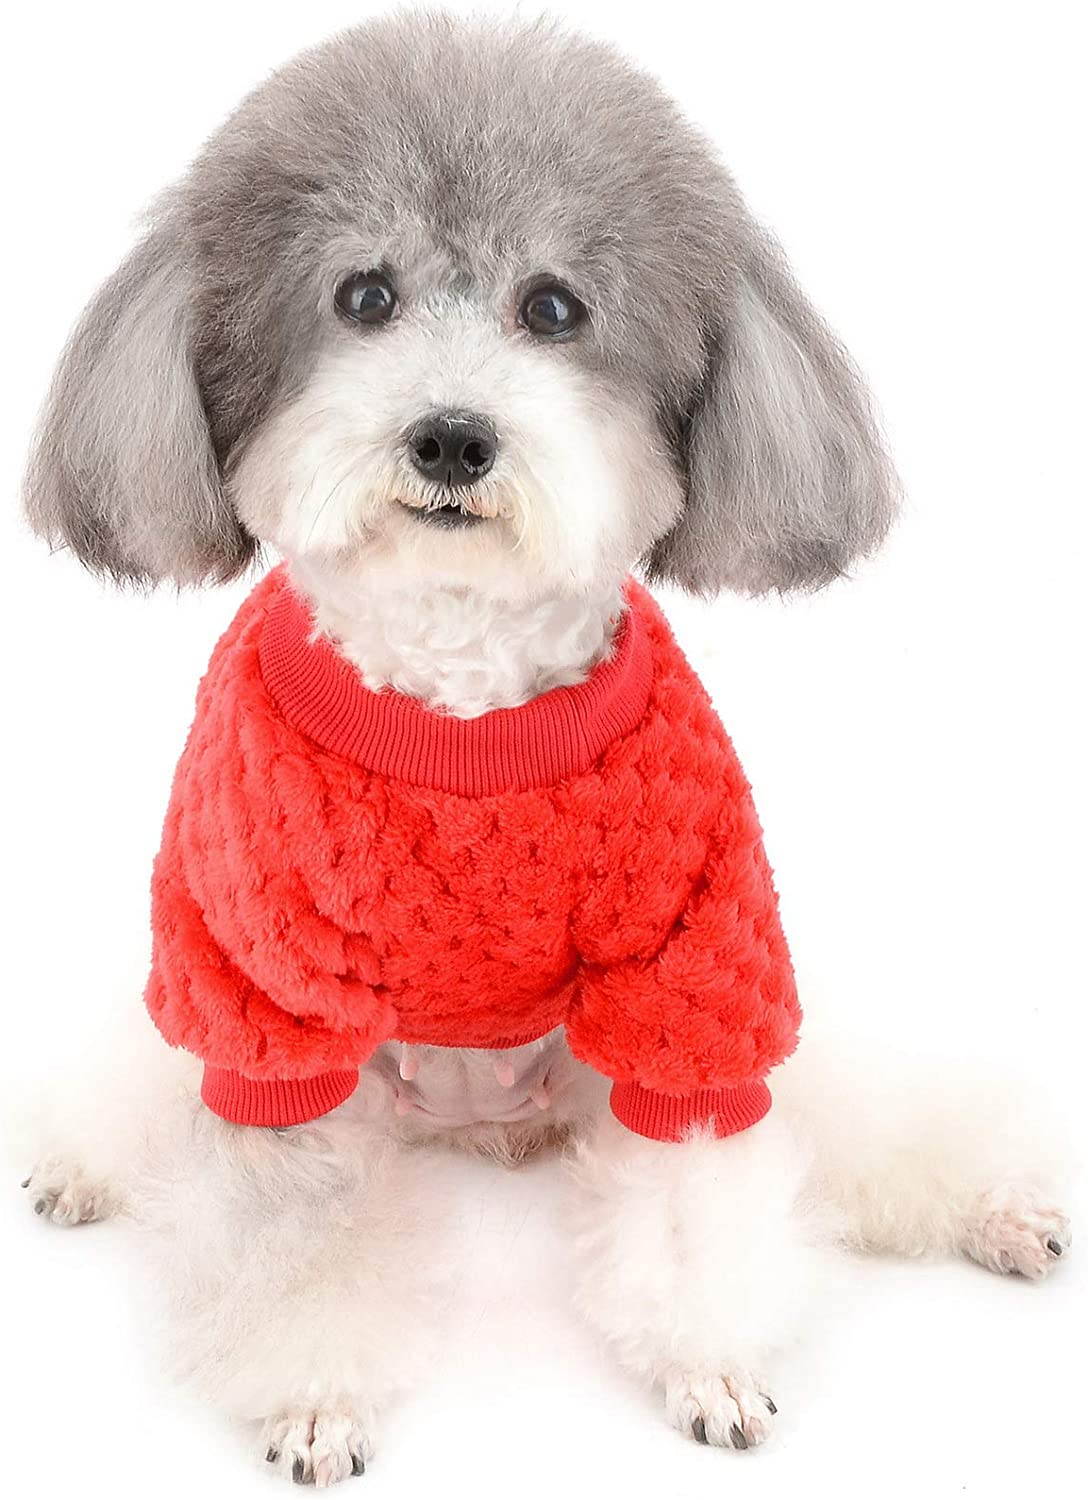 Zunea Small Dog Sweater Coat Fleece Pet Pullover for Dogs Boy Girl Winter Warm Soft Puppy Jumper Clothes Apparel Cat Outwear for Cold Weather Blue S